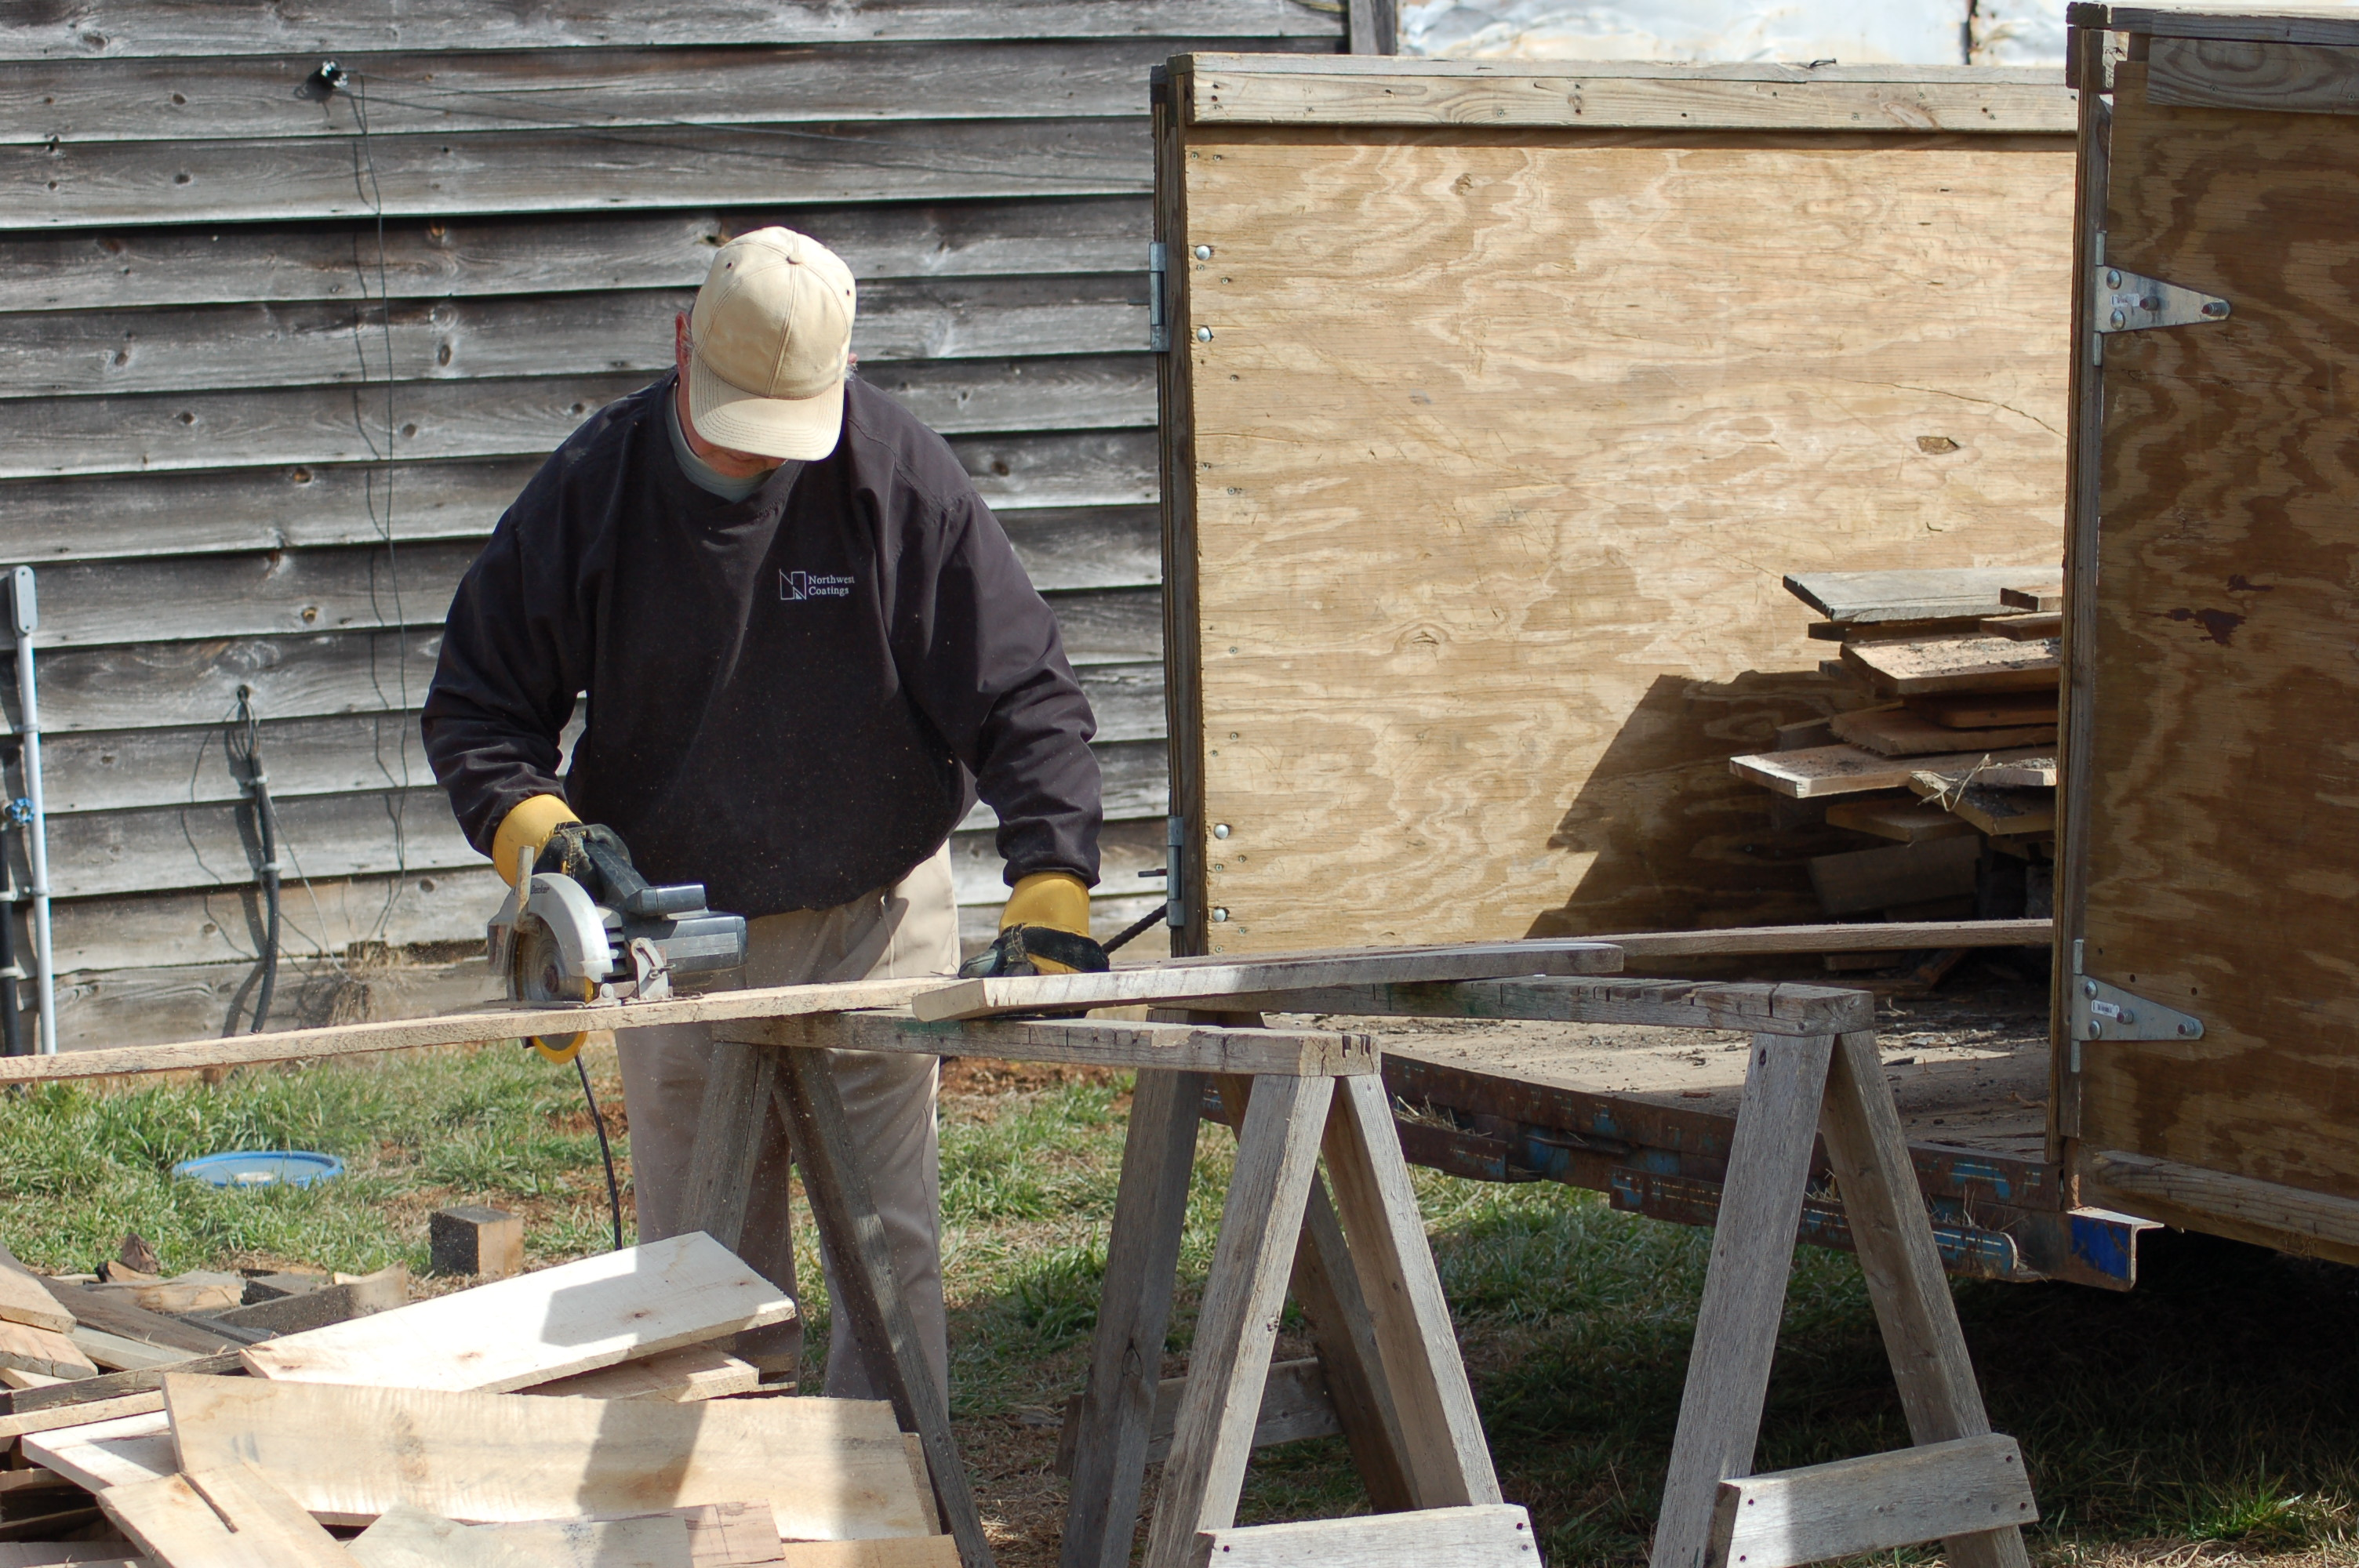 Sawing wood to heat the greenhouse